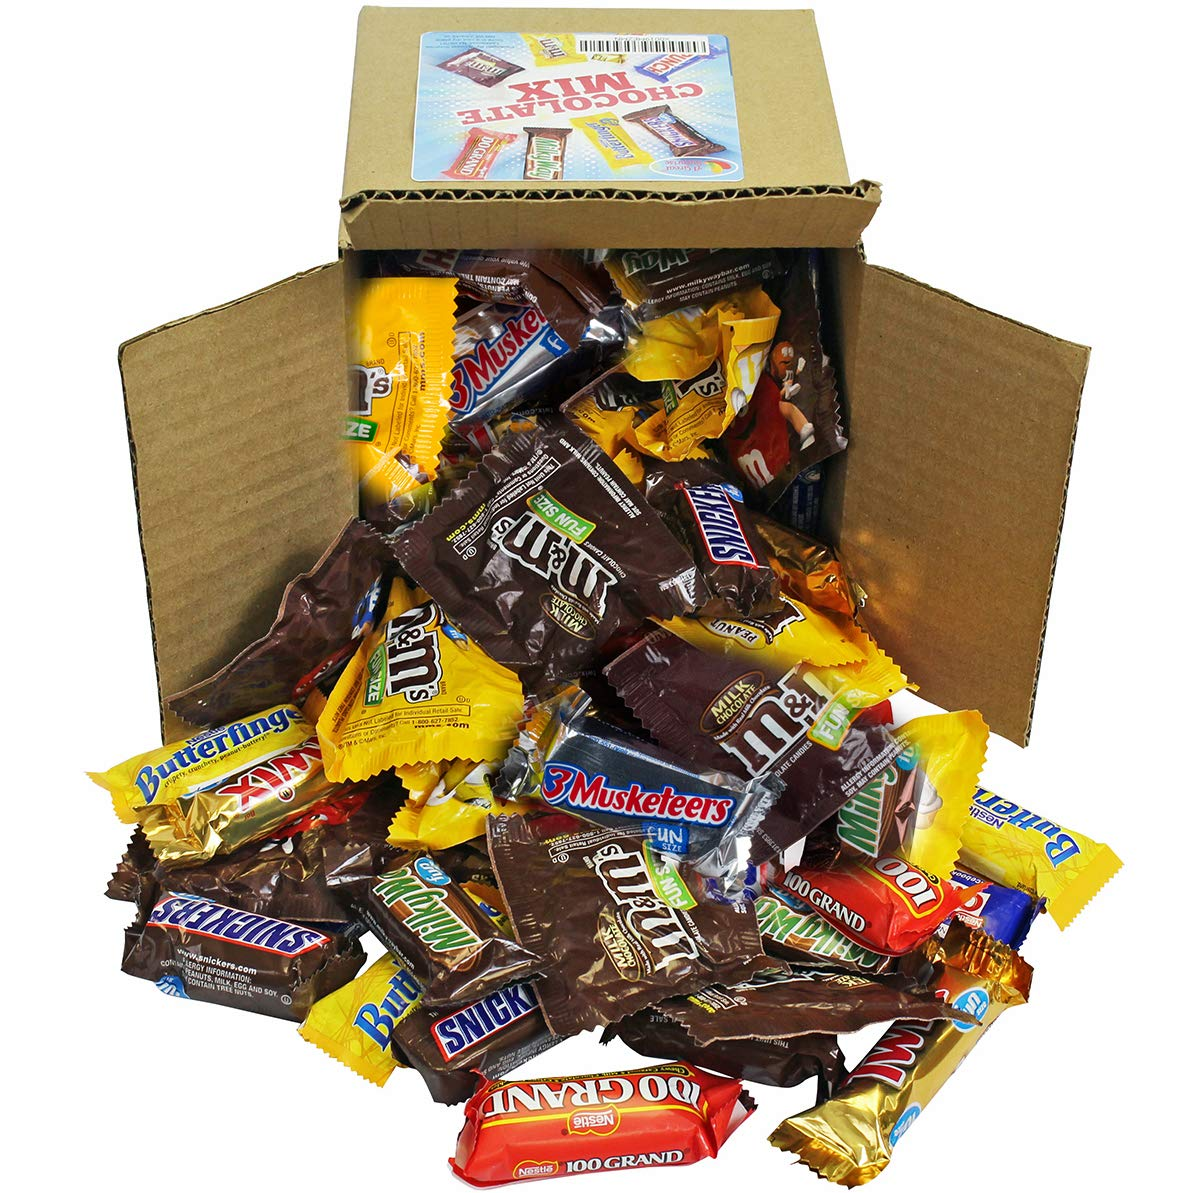 Chocolate Variety Pack - Fun Size Candy - All Your Favorite Chocolate Bars Including M&M, Snickers, Twix and More In 6x6x6 Bulk Box, 3.2 LB by A Great Surprise